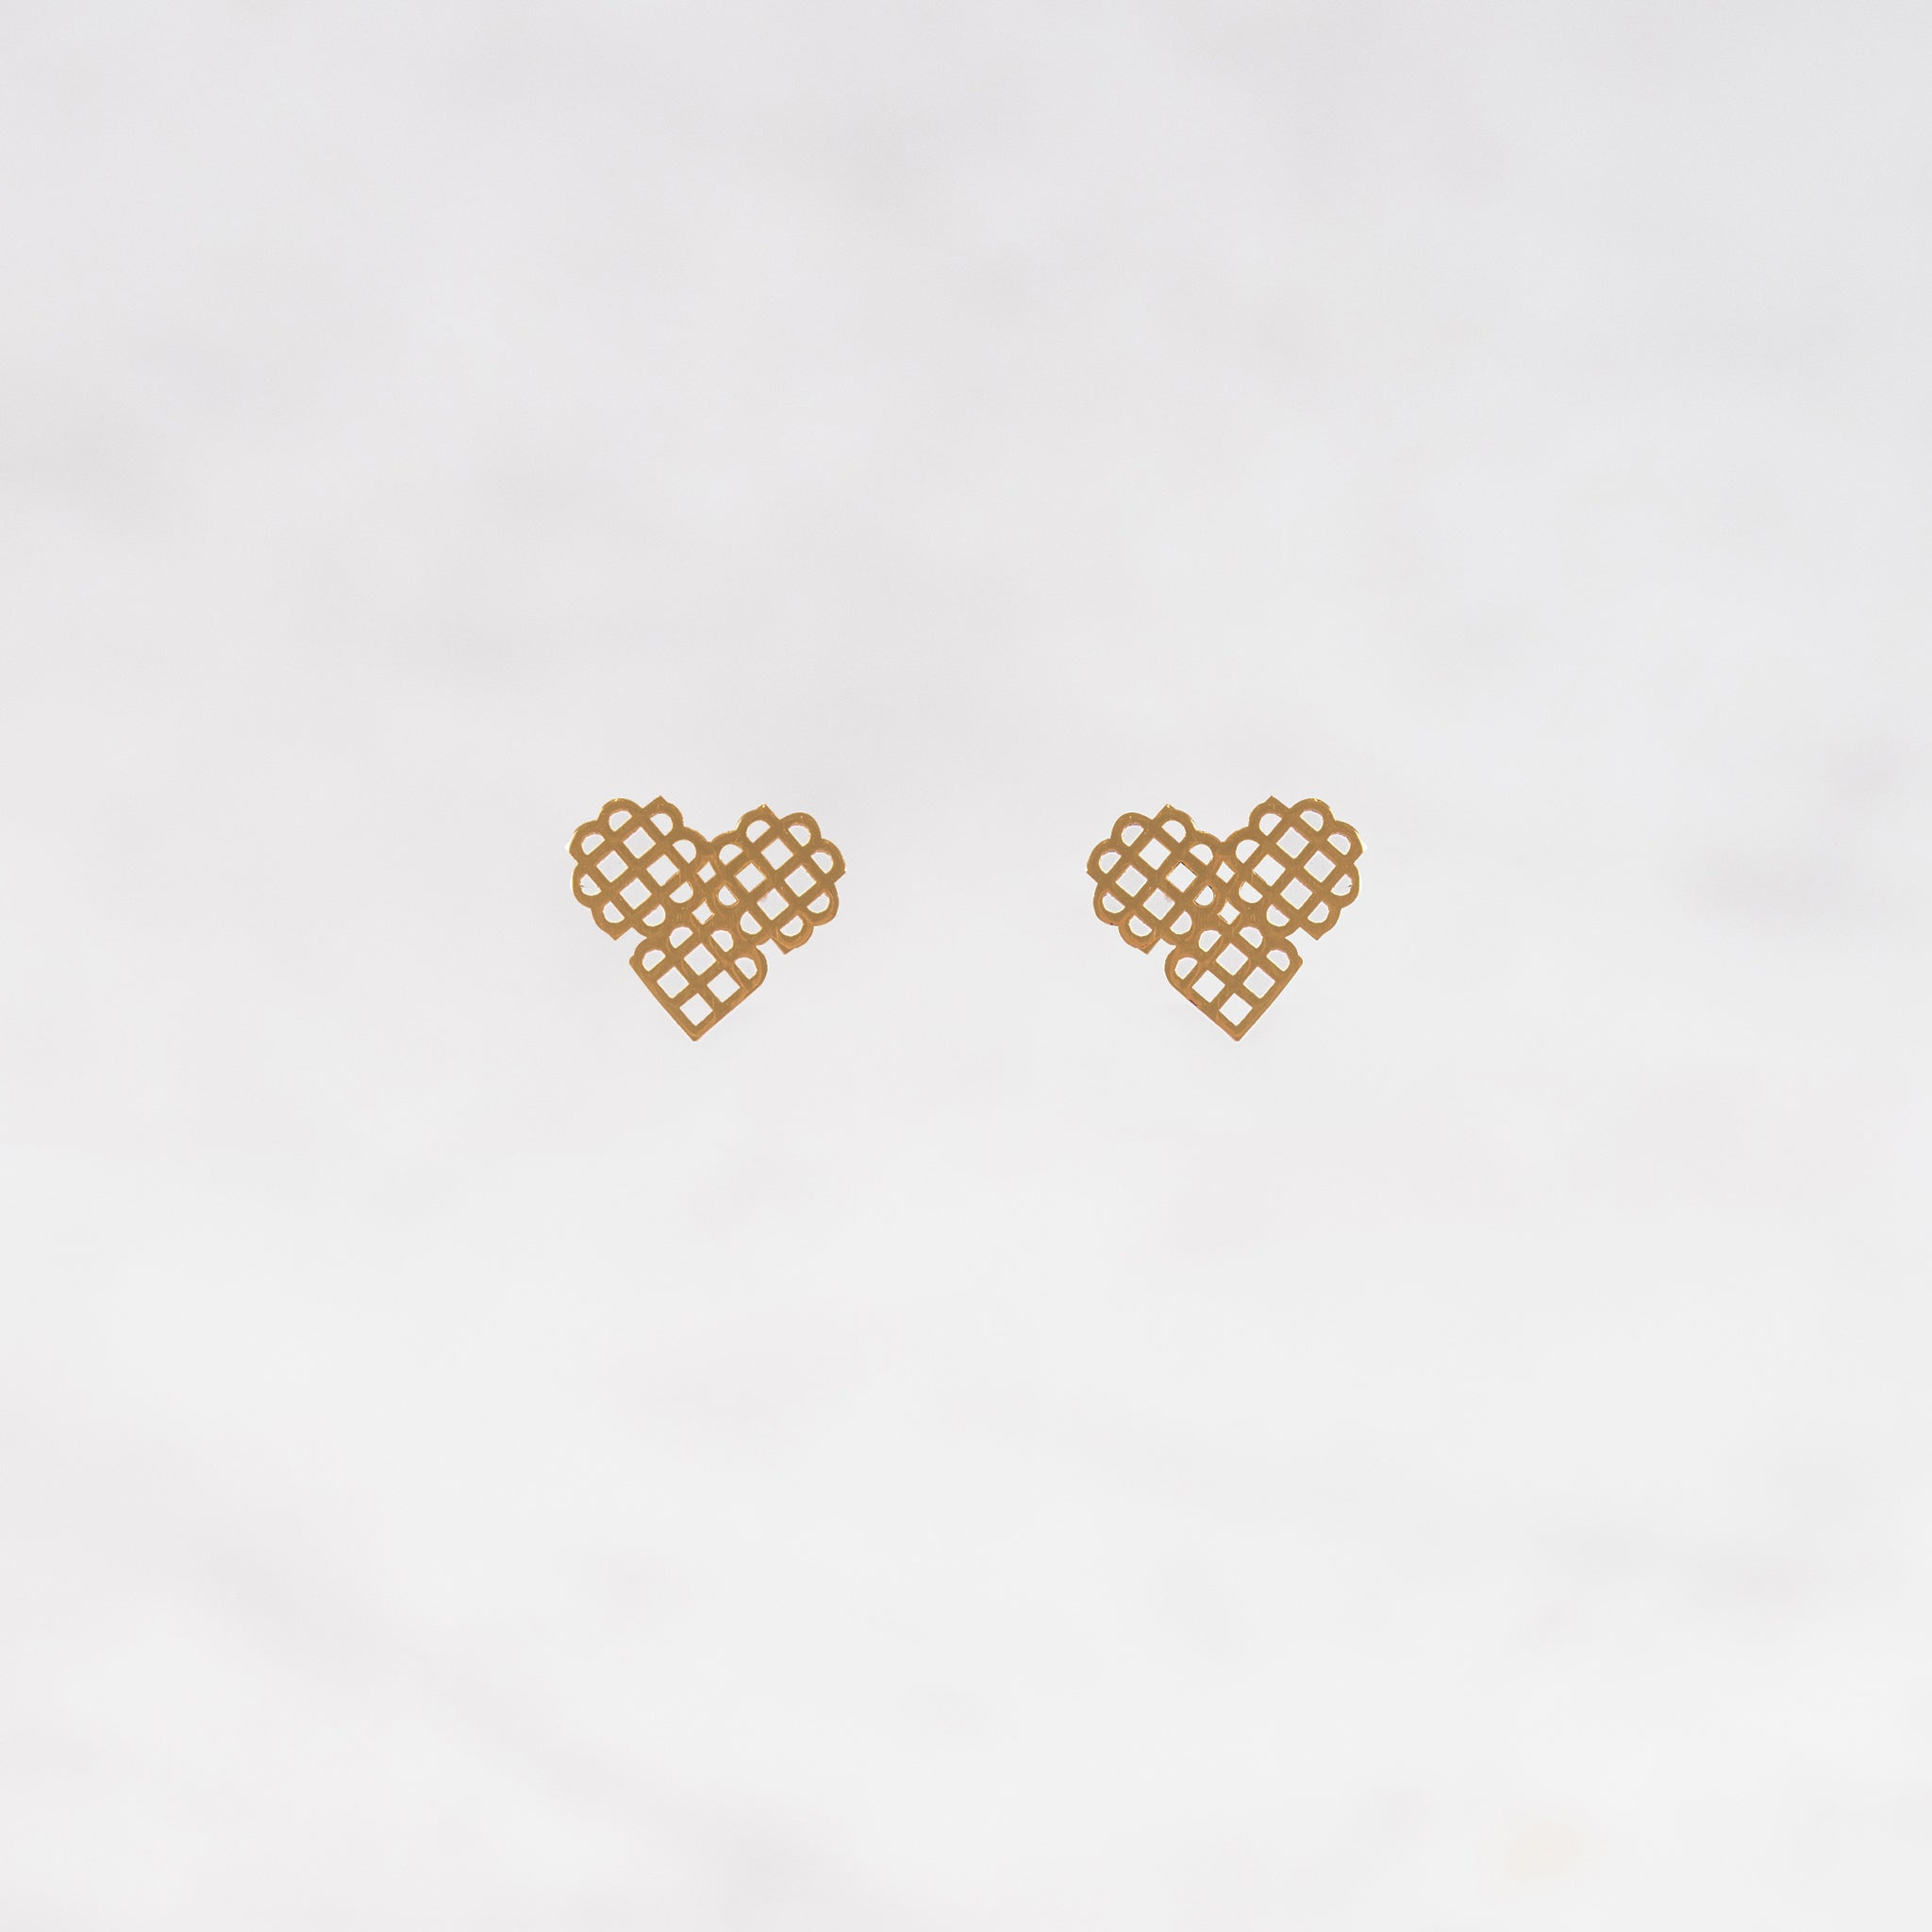 Millié Jewelry - Millié Jewelry - Millié Heart Mini Earrings - Aretes - Diseño Mexicano - Hecho en México